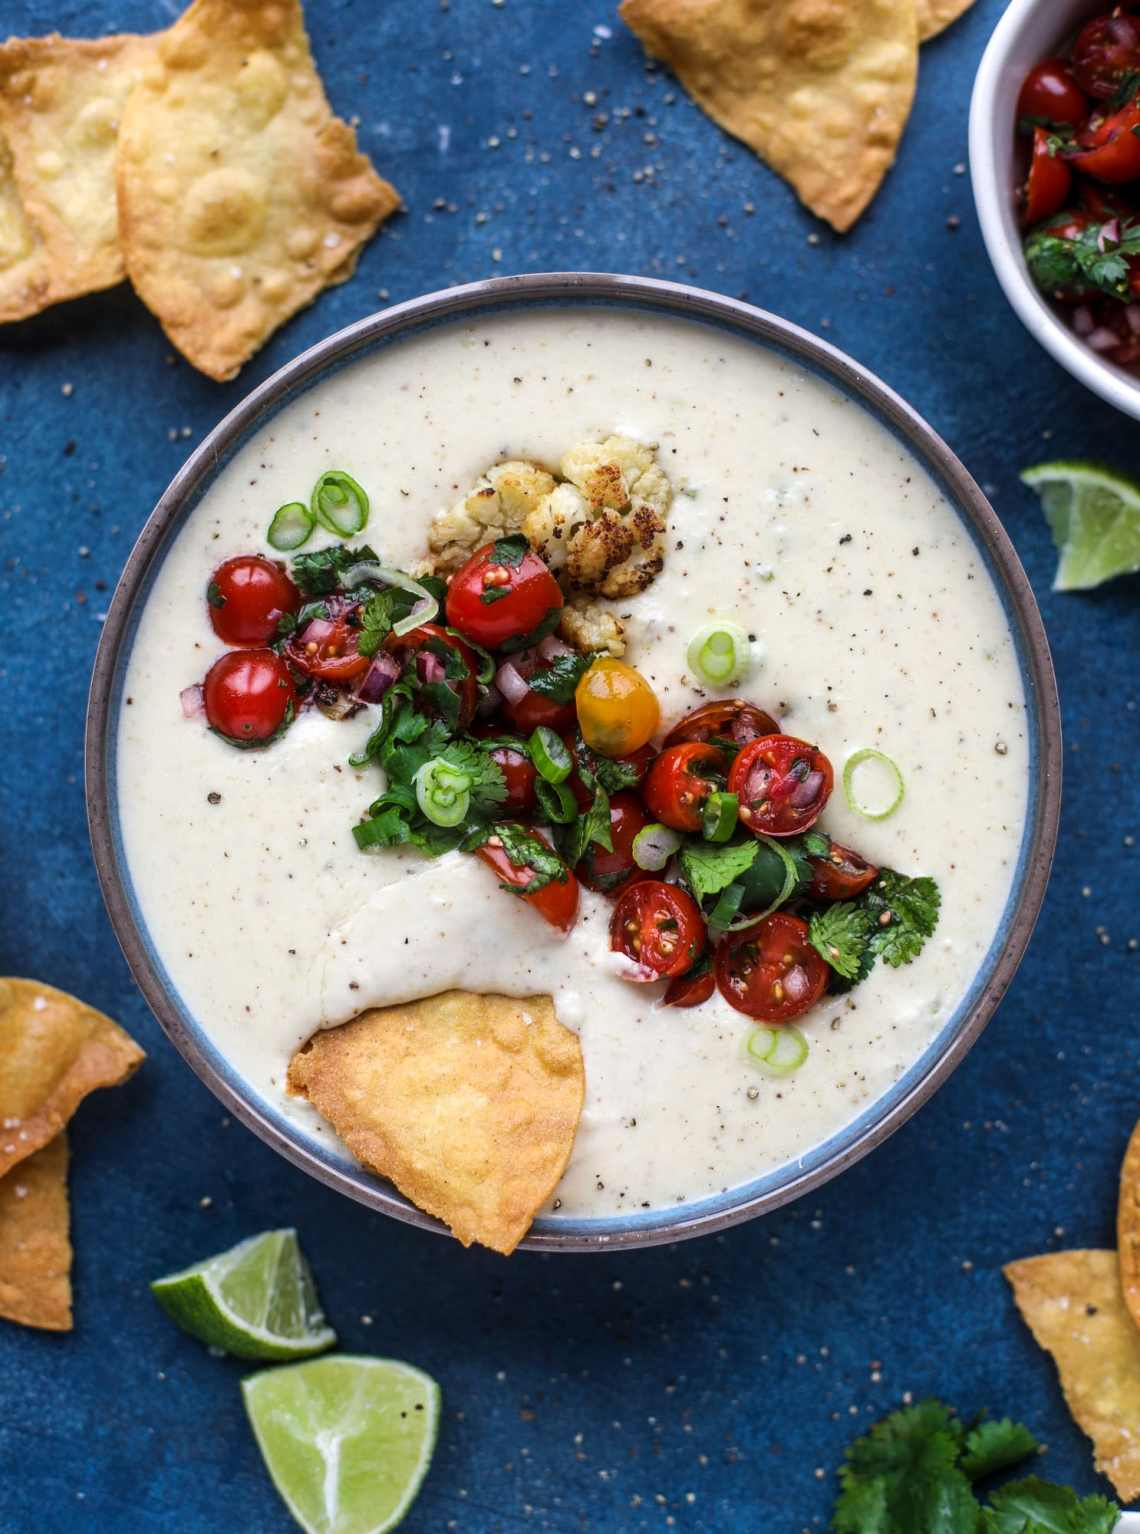 This roasted cauliflower queso has all the deliciousness of regular queso, with roasted cauliflower added in. It's satisfying and tastes like heaven. I howsweeteats.com #cauliflower #queso